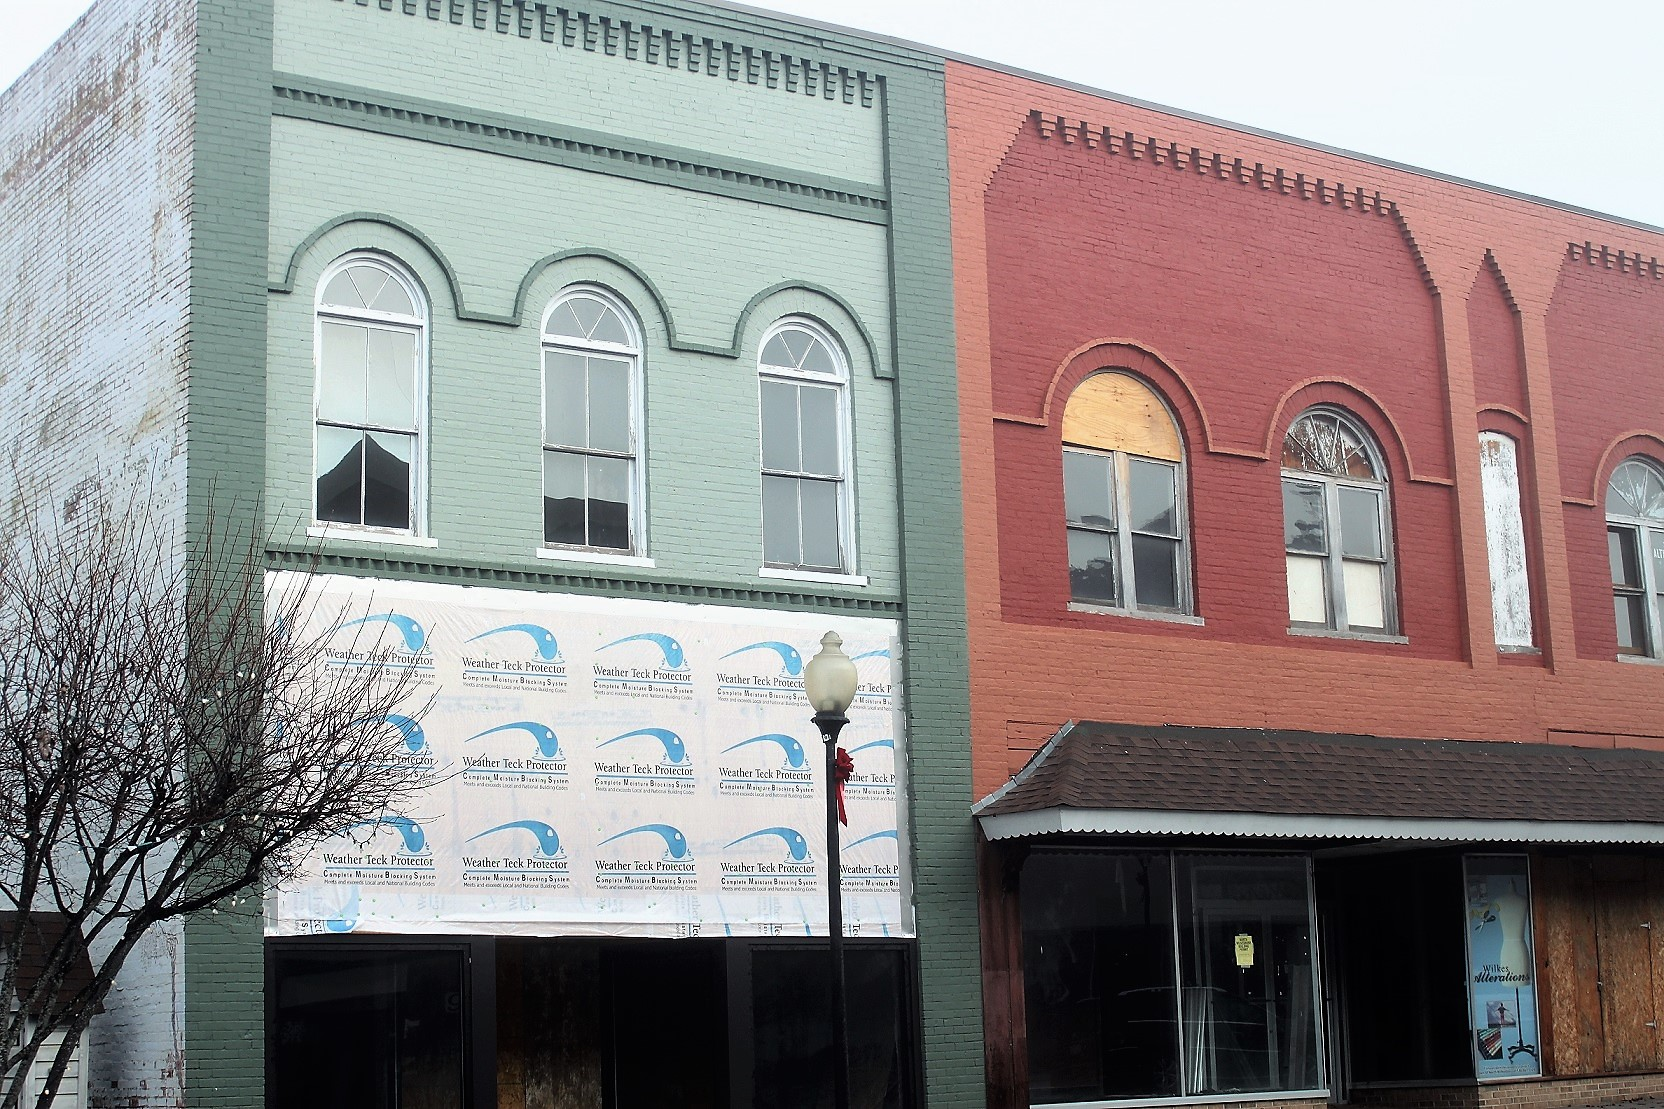 Historic Downtown North Wilkesboro Town Accepting RFPs for Main